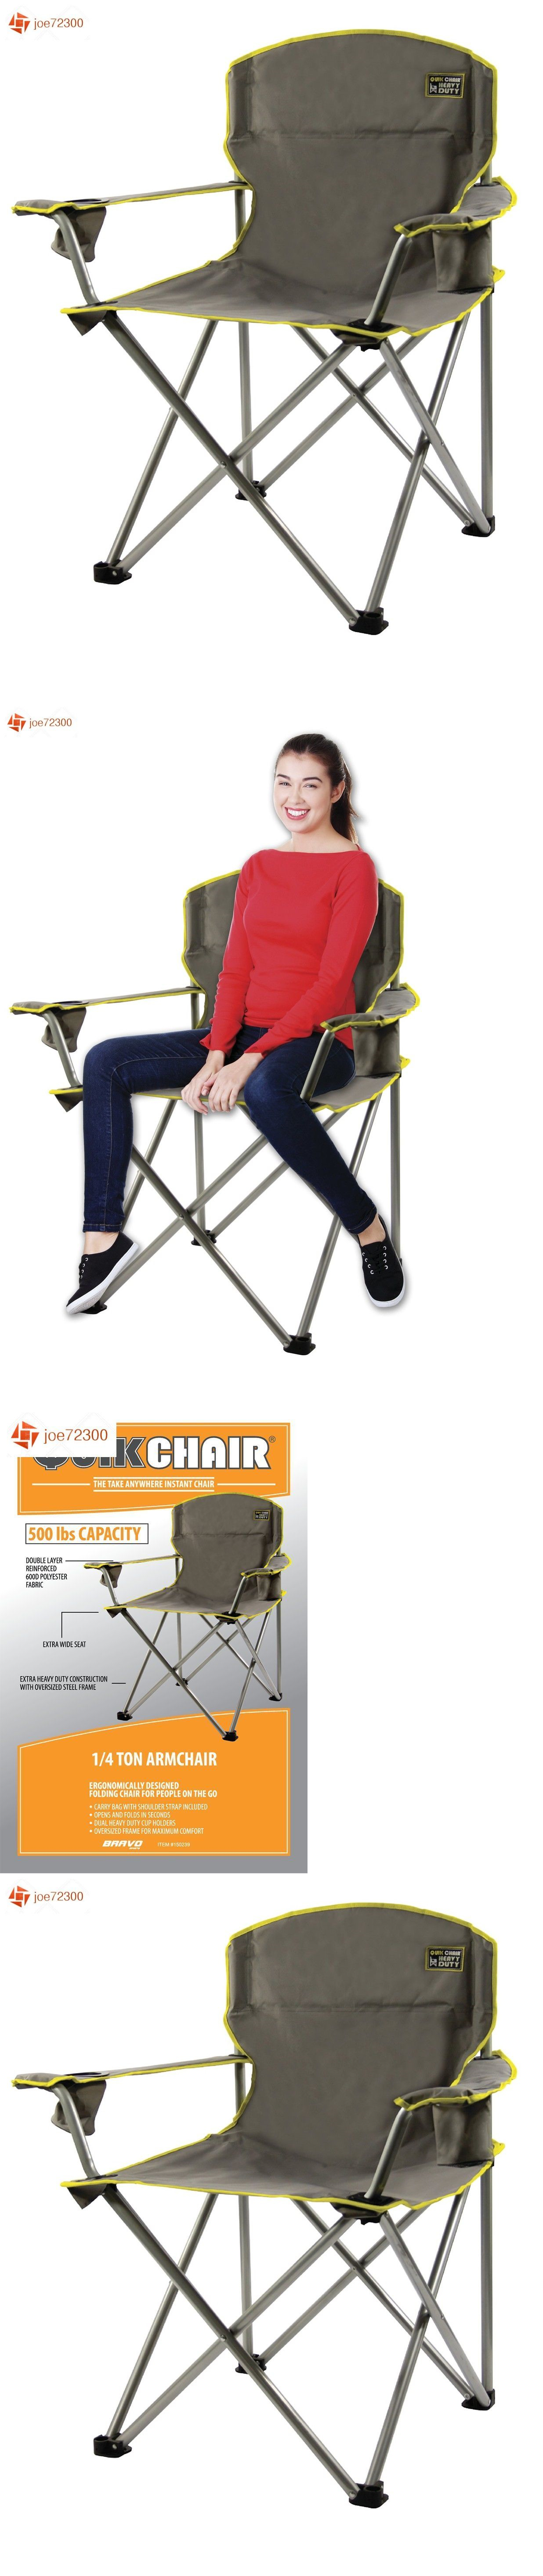 Camping Furniture Heavy Duty Folding Camp Chair Outdoor